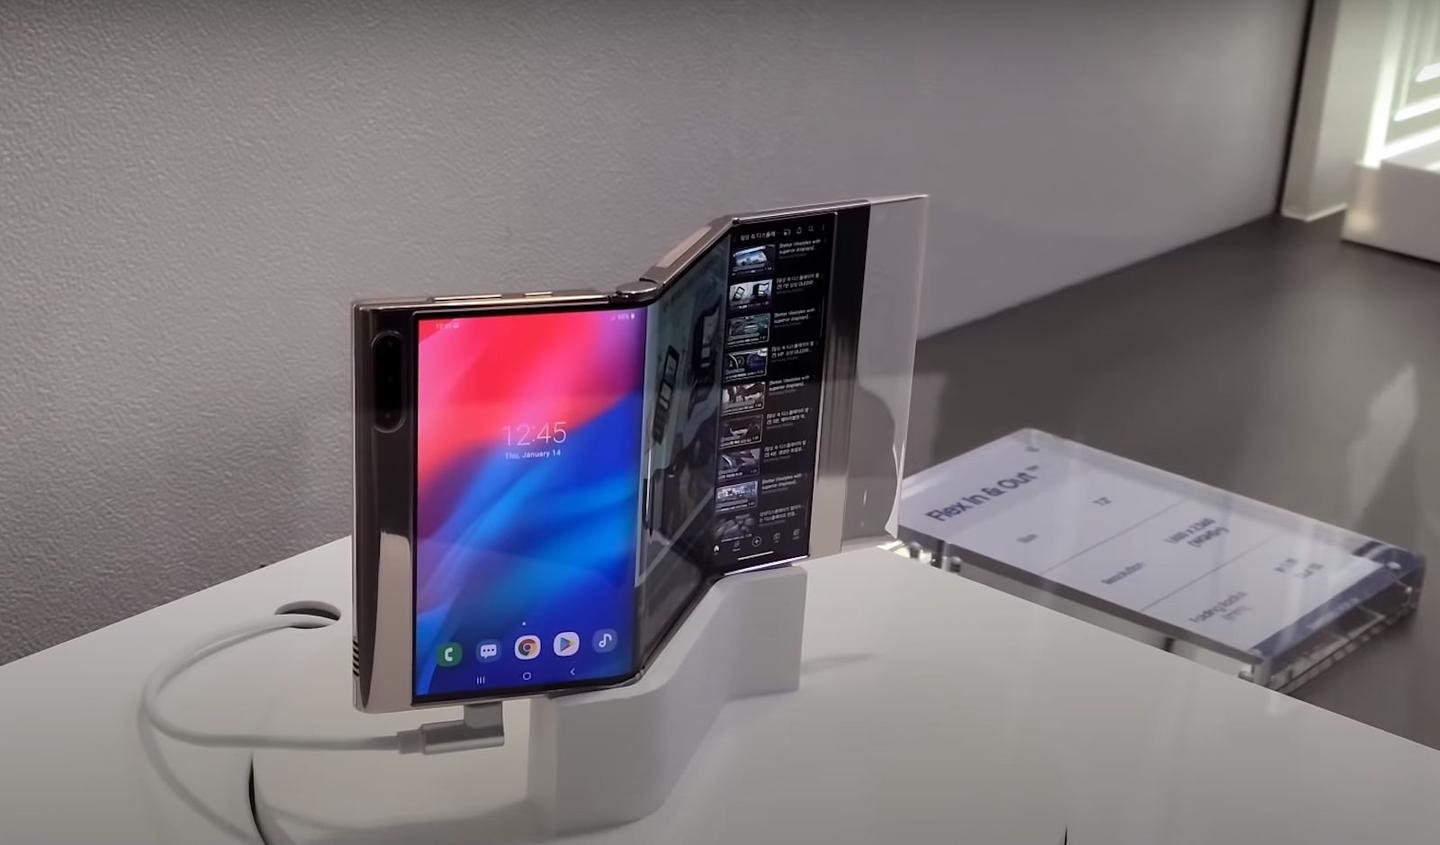 Though the video released by Samsung Display doesn't show the OLED panel folding in and out, it does show the screen powered on and running through demo screens